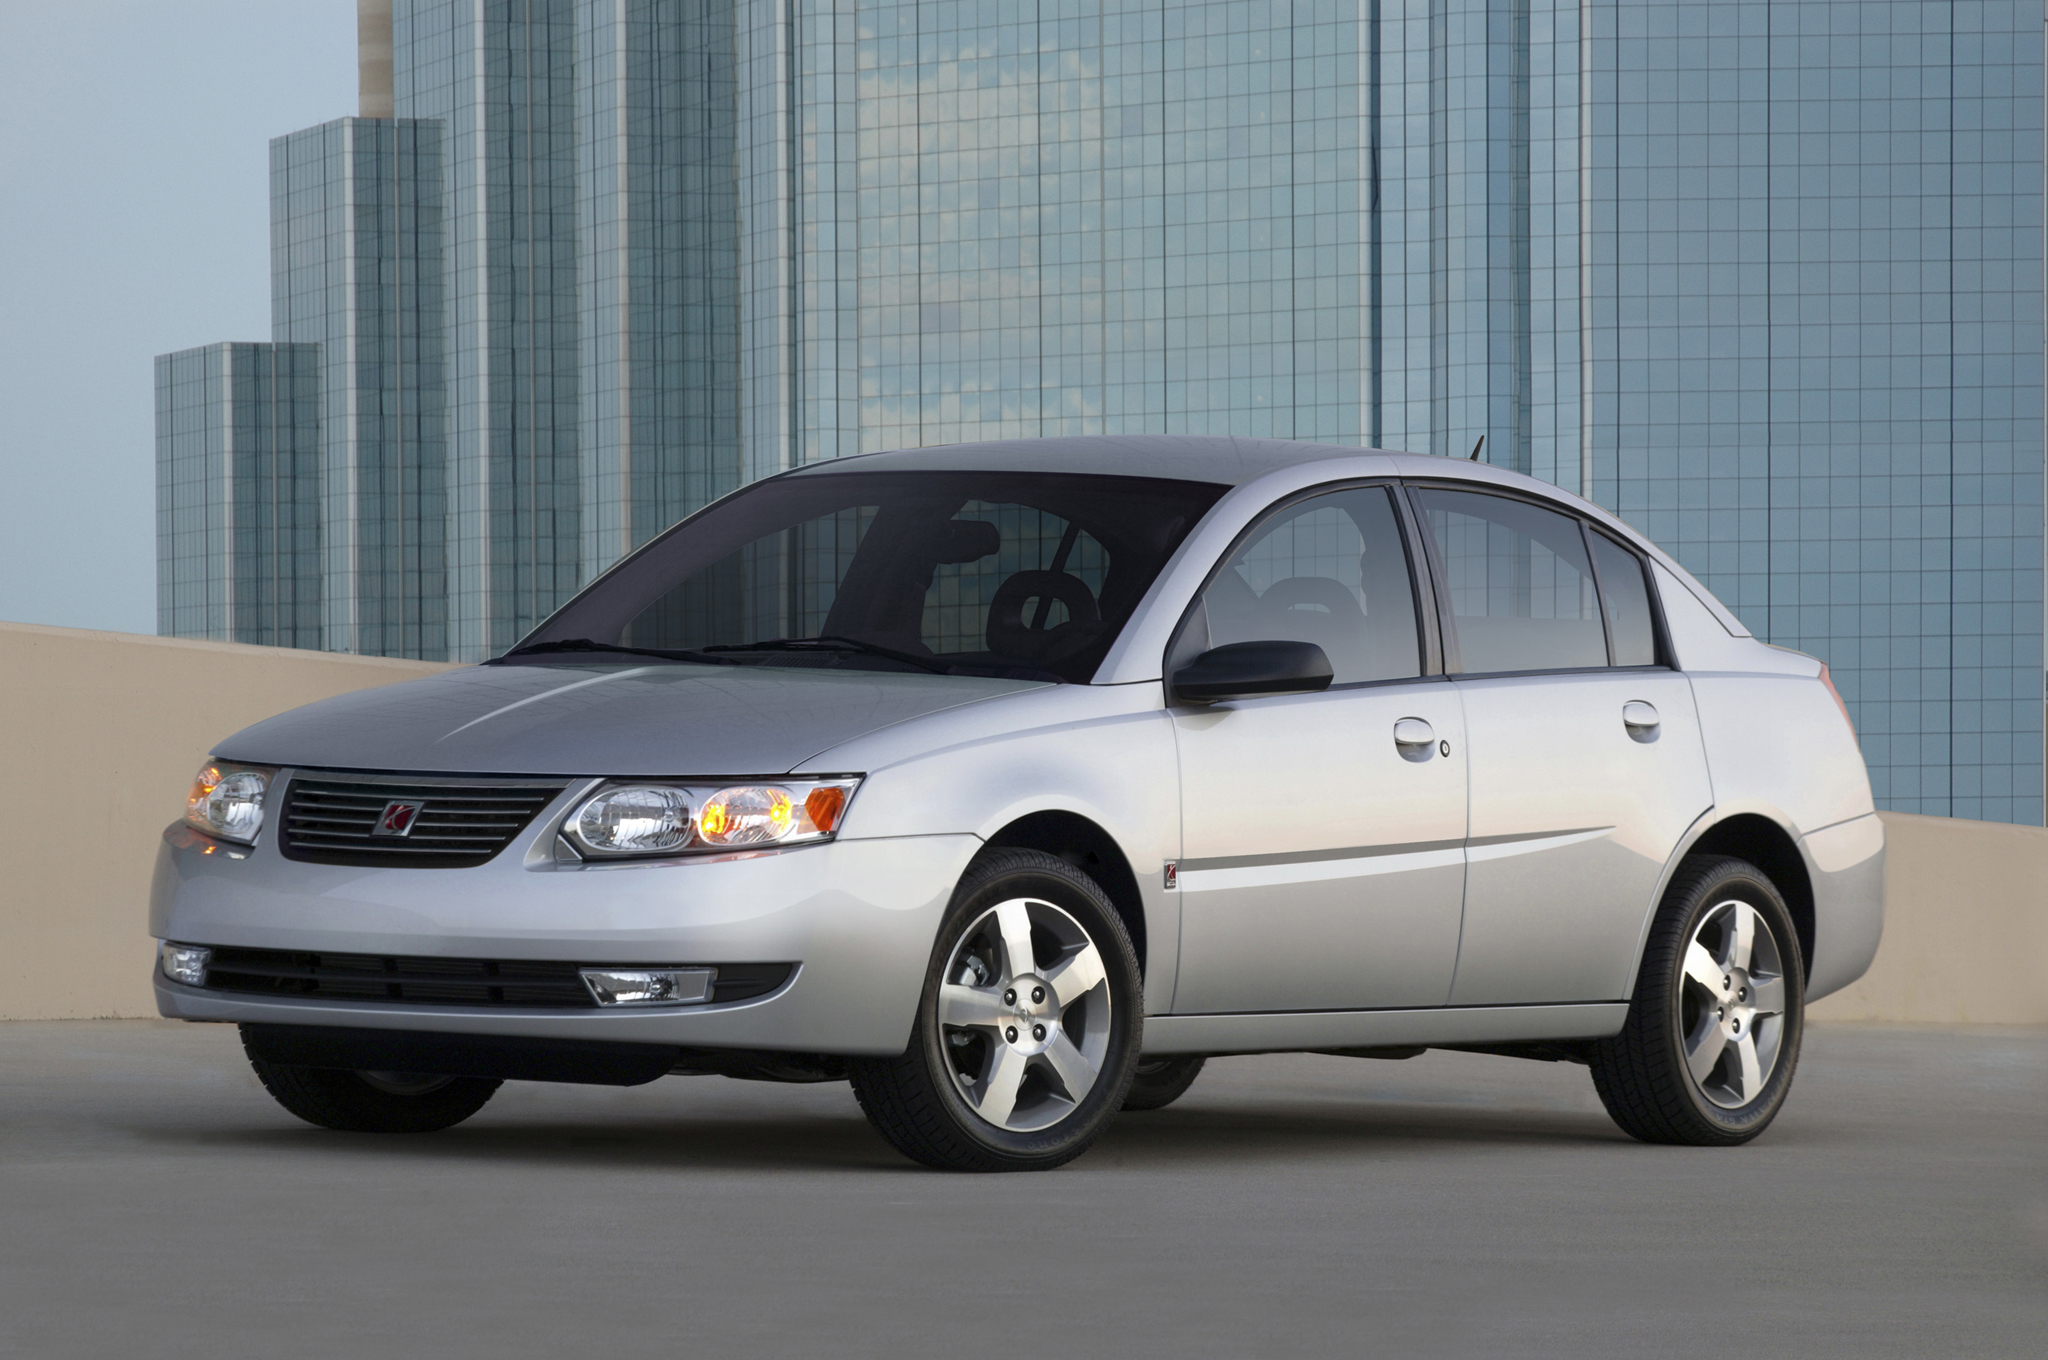 small resolution of gm expands ignition recall to 1 36 million vehicles including chevrolet hhr saturn ion